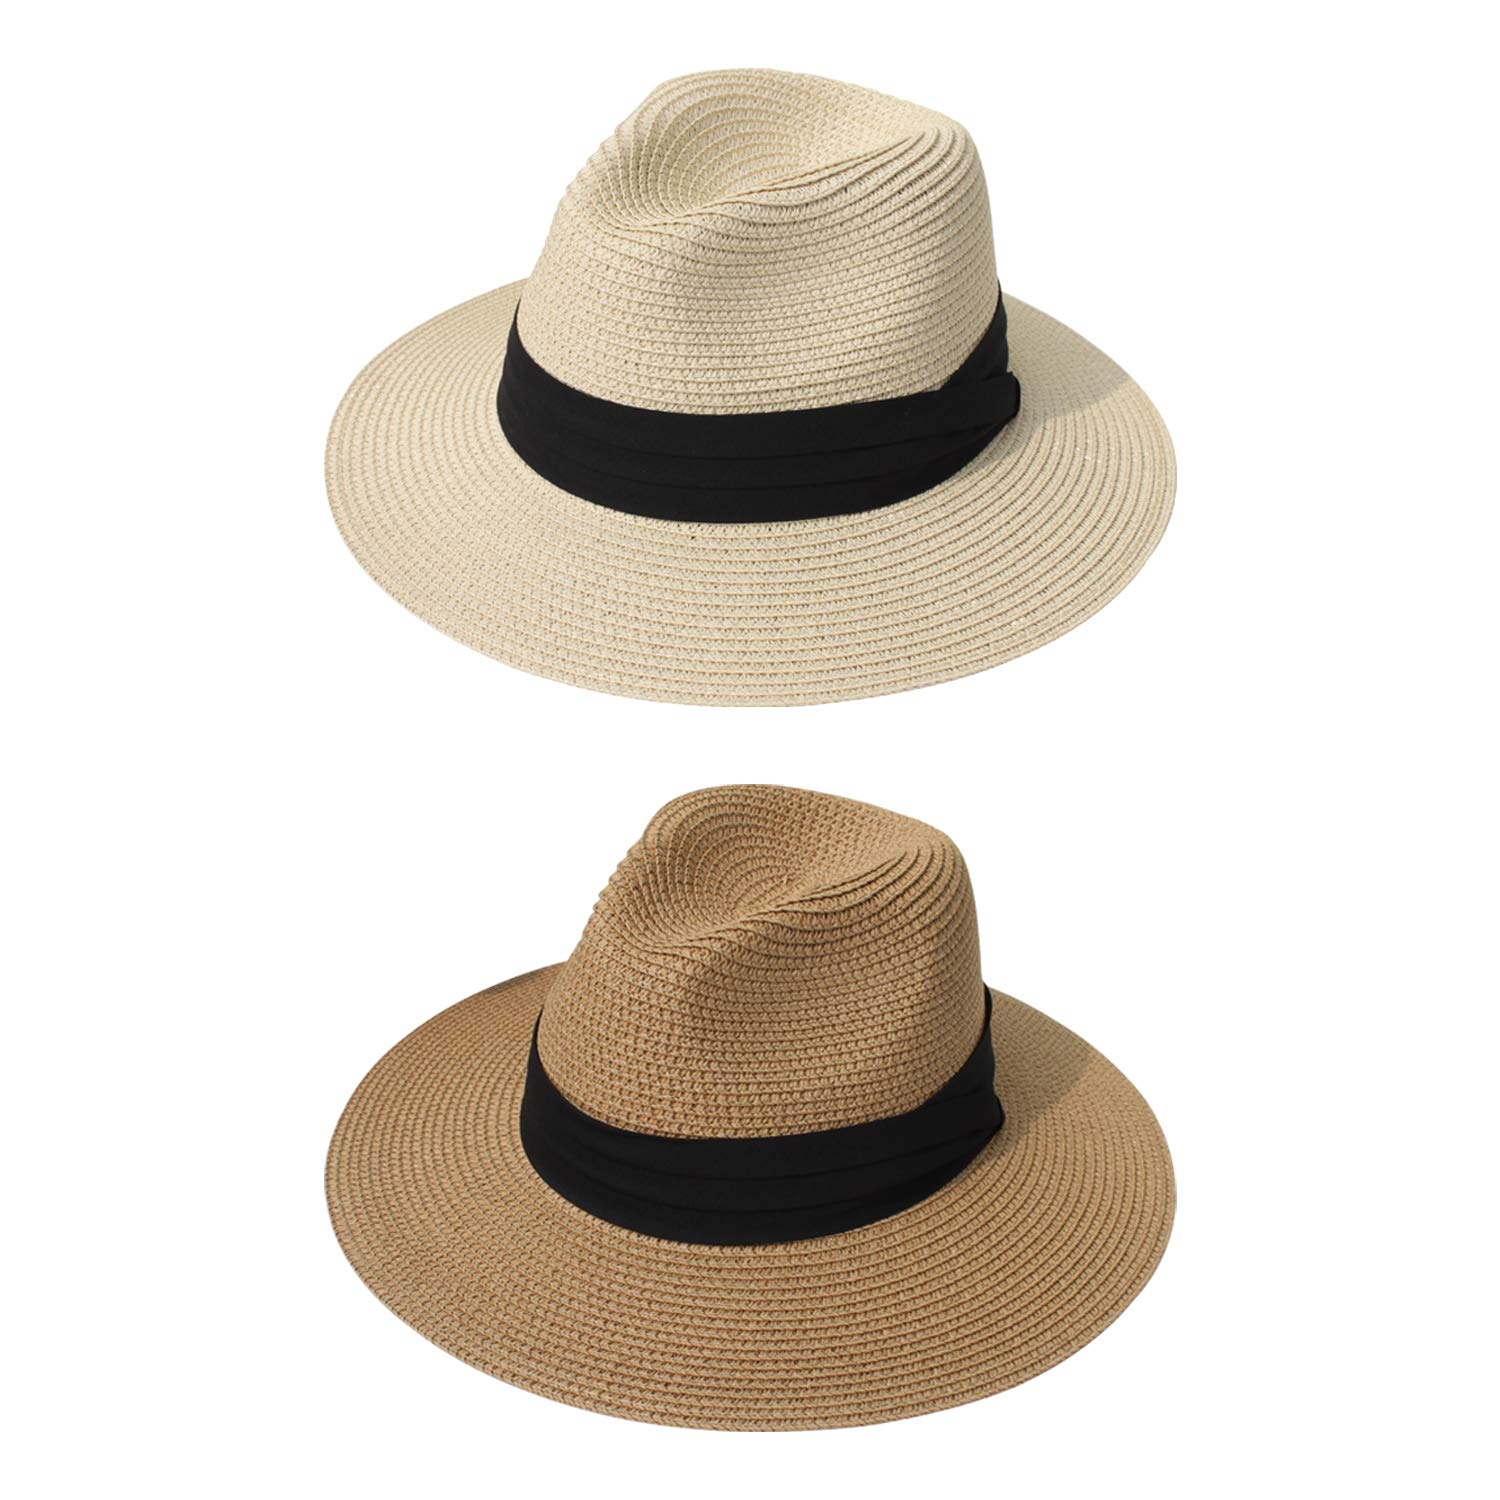 DRESHOW Women Straw Panama Hat Fedora Beach Sun Hat Wide Brim Straw Roll up Hat UPF 50+ (2 Pack Fedora: Khaki, Beige A) by DRESHOW